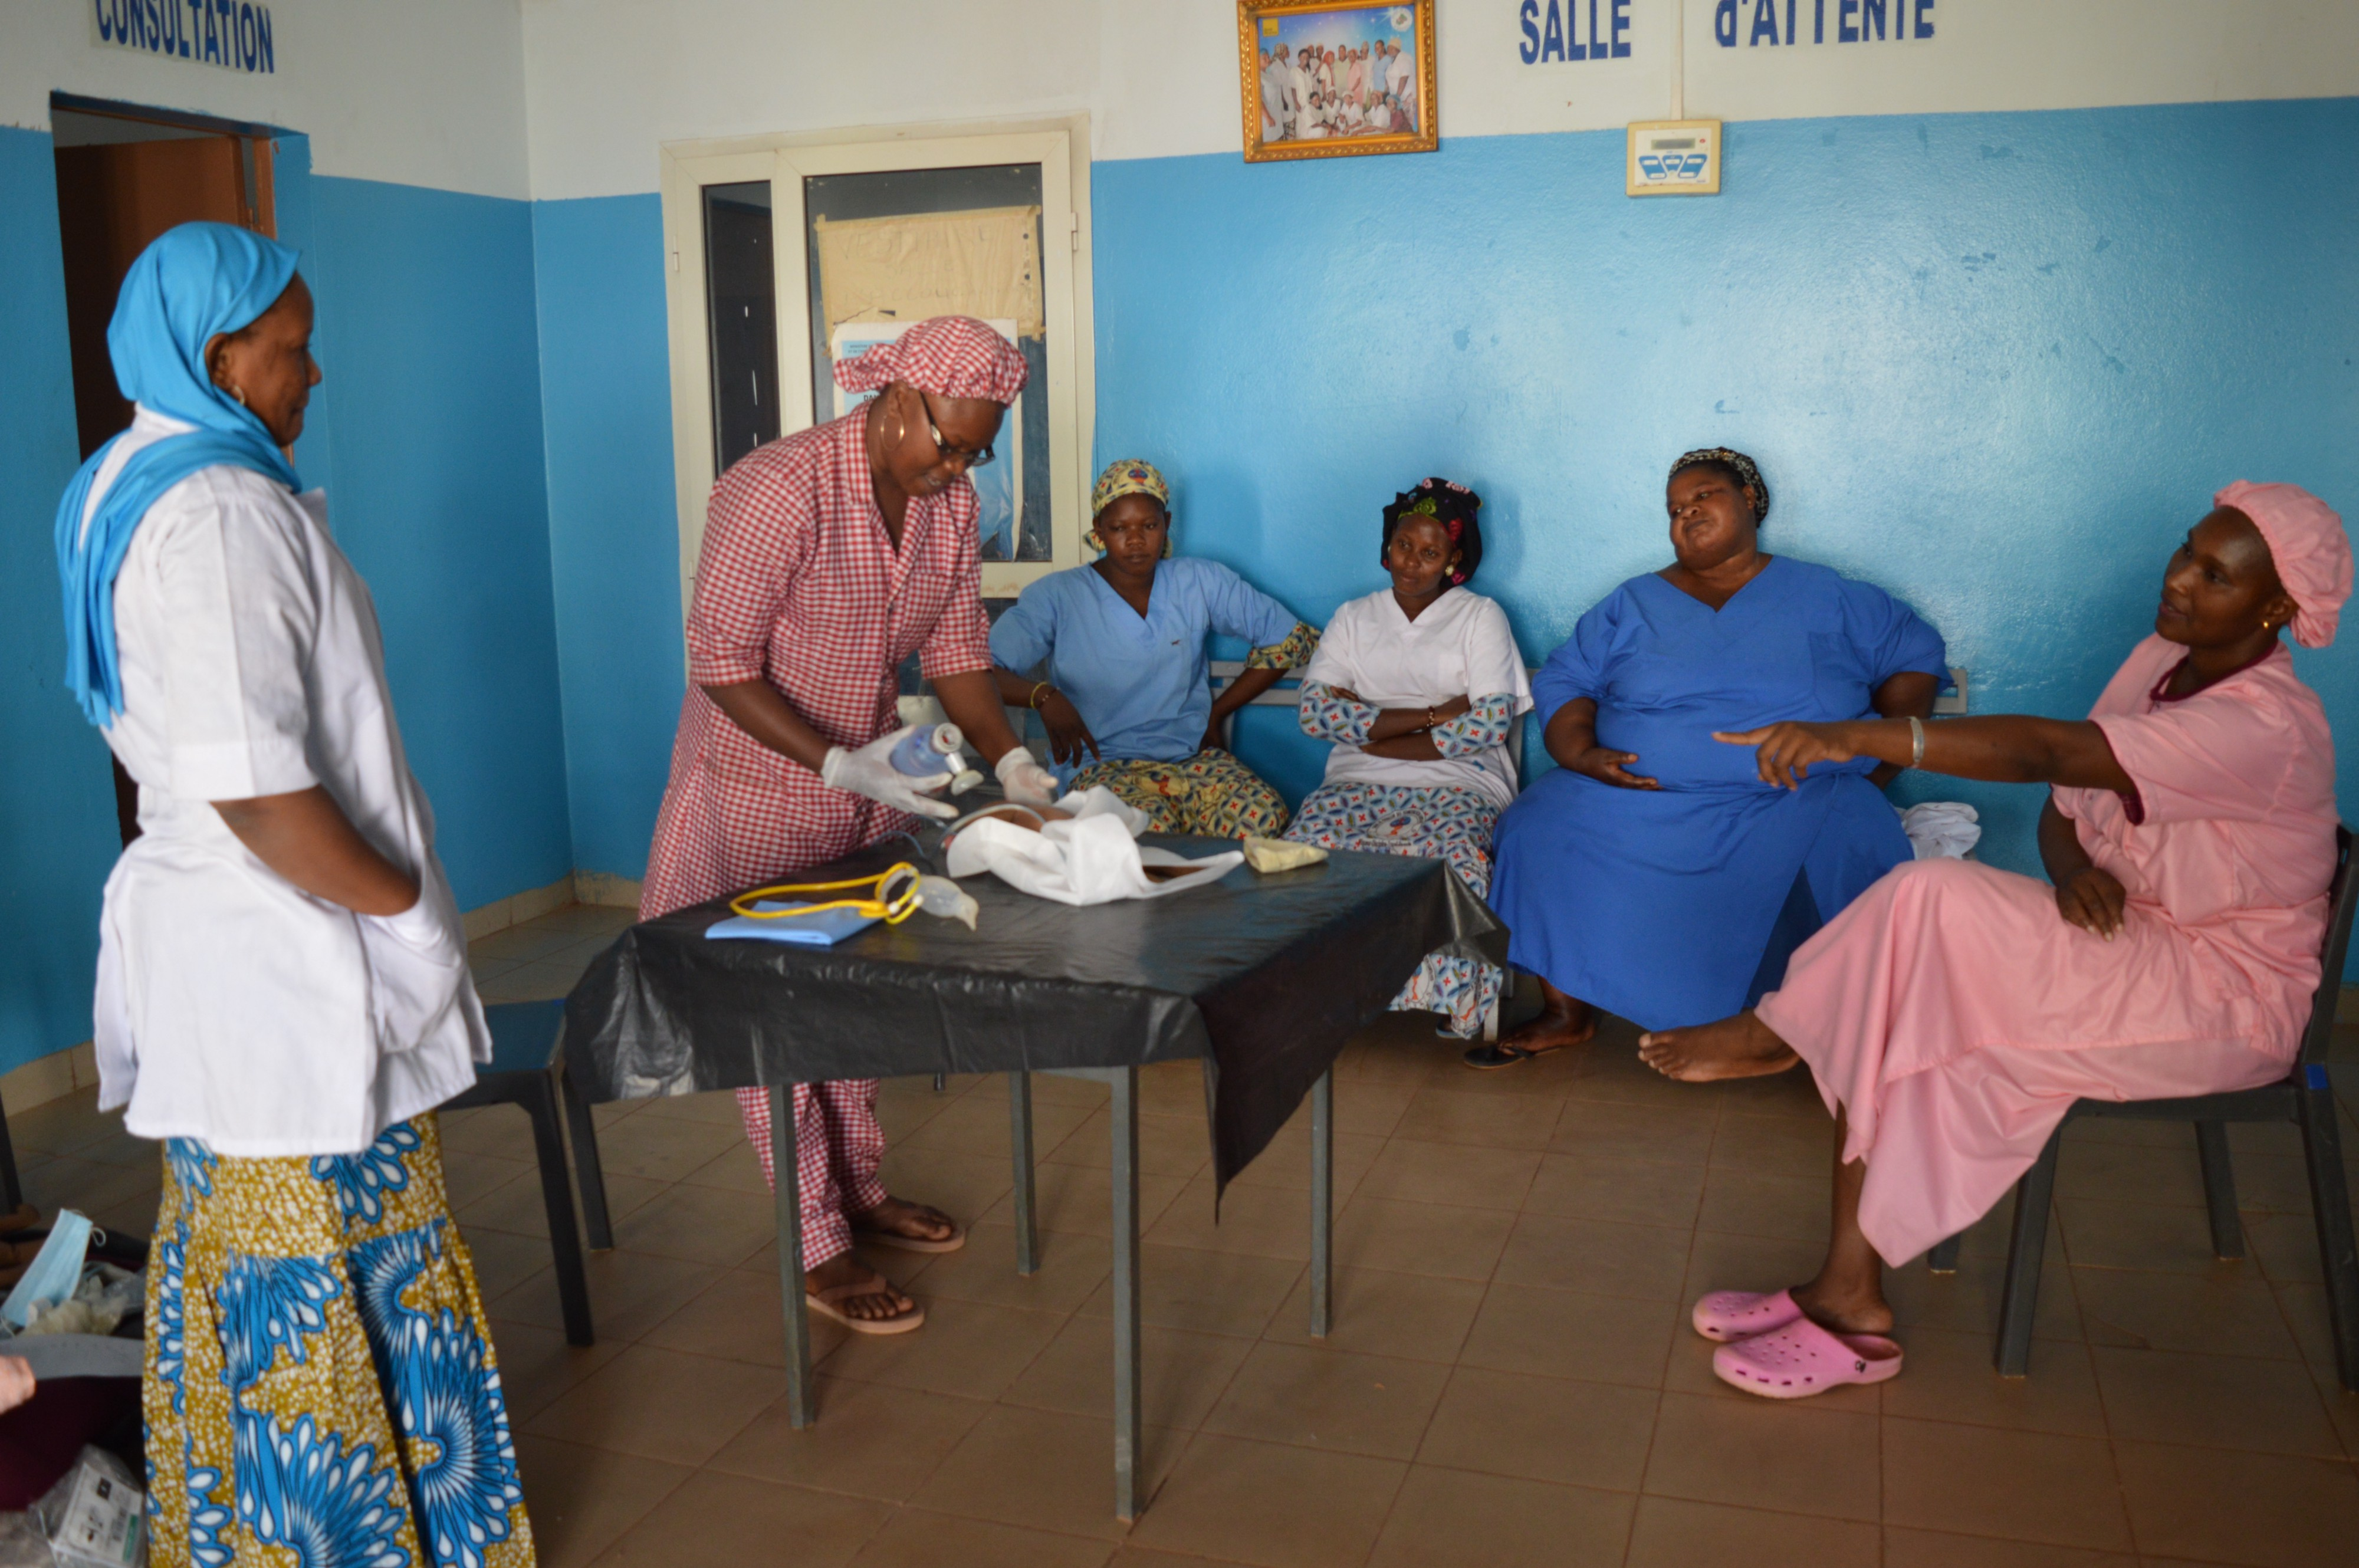 Mama Diancoumba provides coaching to her peers after training she received through a USAID program.